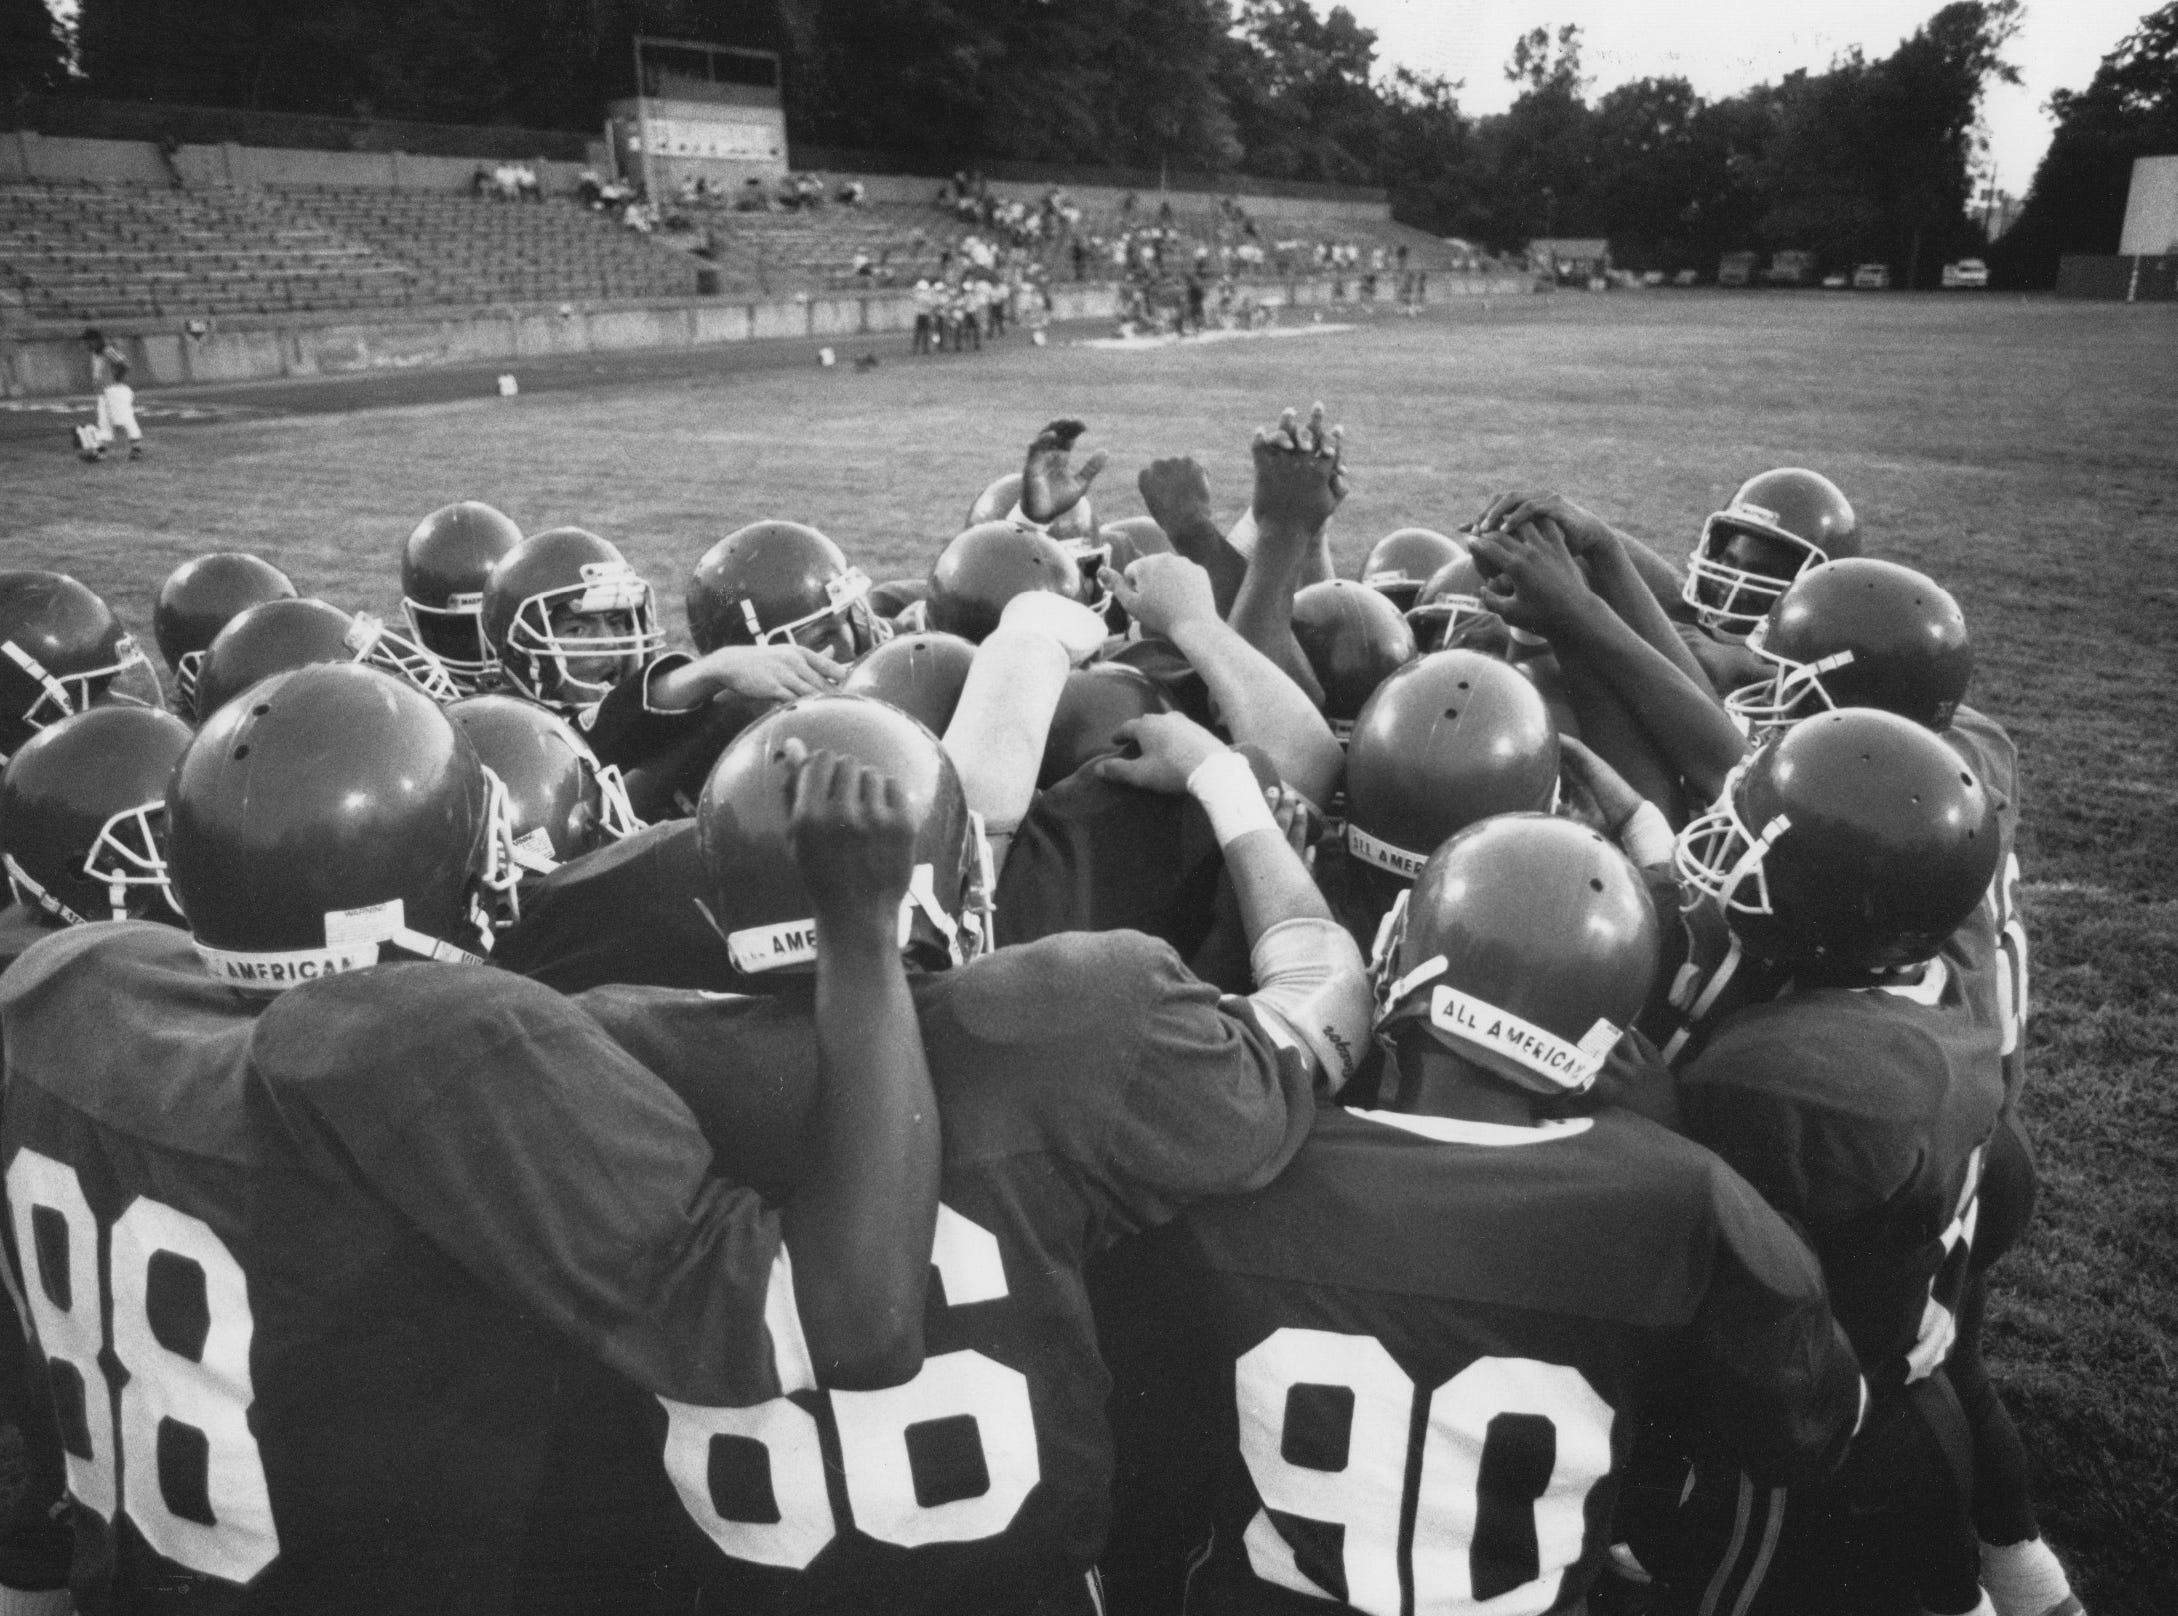 Tech's fooball team huddles together before the start of a game in 1990.